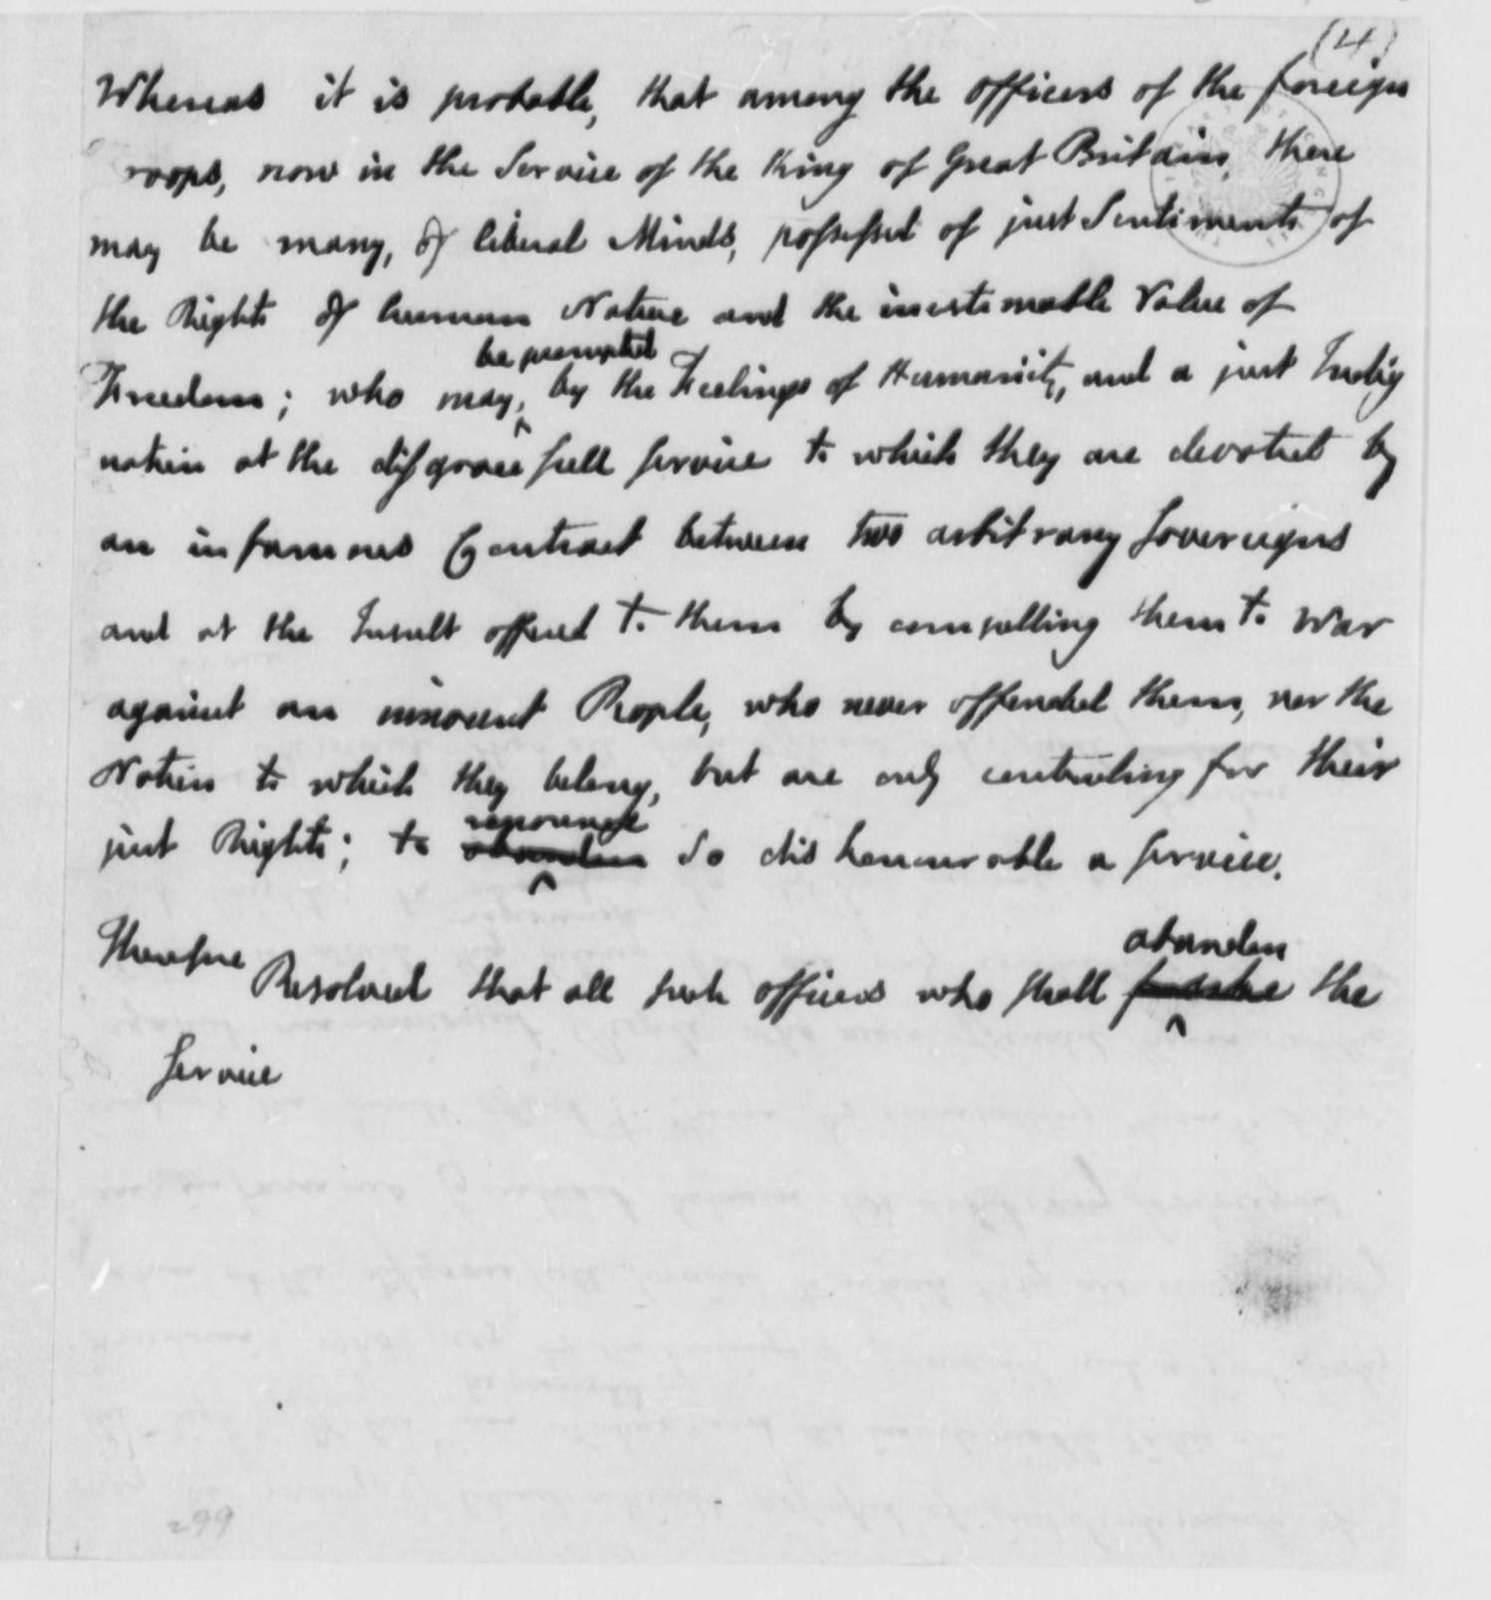 Continental Congress, August 27, 1776, Draft of Resolution to Recruit British Officers and Soldiers into Continental Army; Incomplete